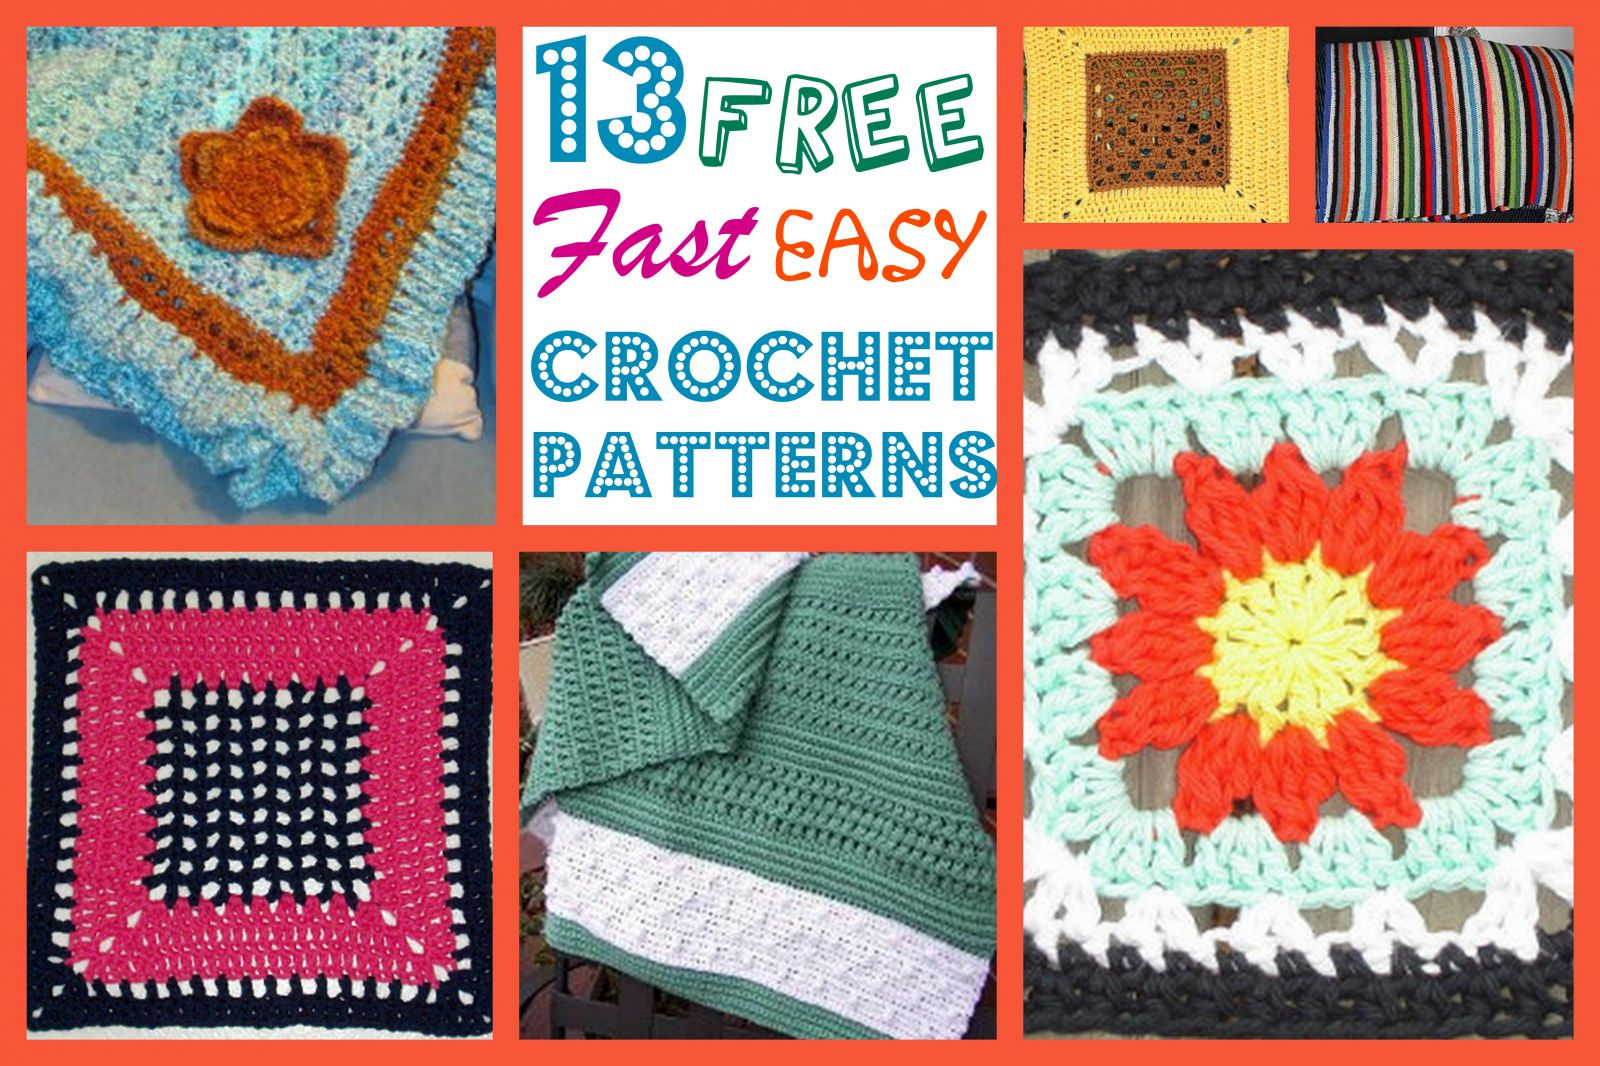 13 free fast easy crochet patterns 13 free fast easy crochet patterns easy crochet afghan patterns bankloansurffo Gallery